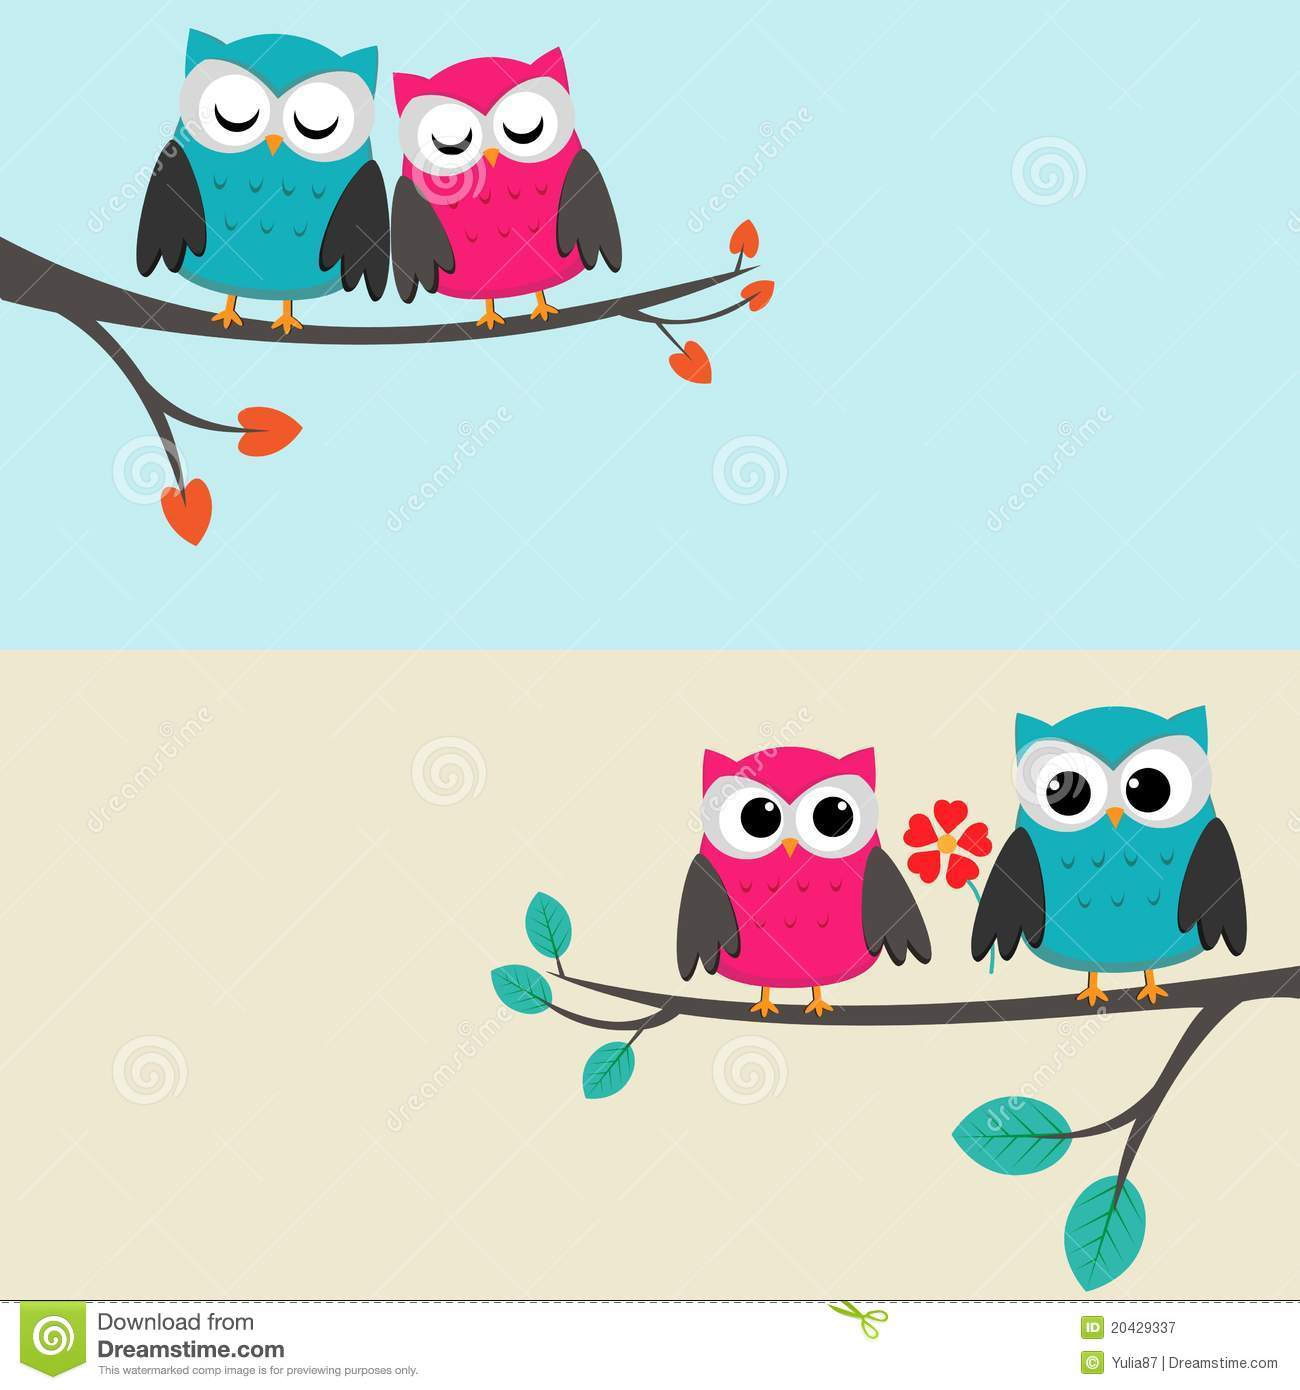 Owls color owls clip art by yulia87 on dreamstime - Owls Couples Royalty Free Stock Photography Image 20429337